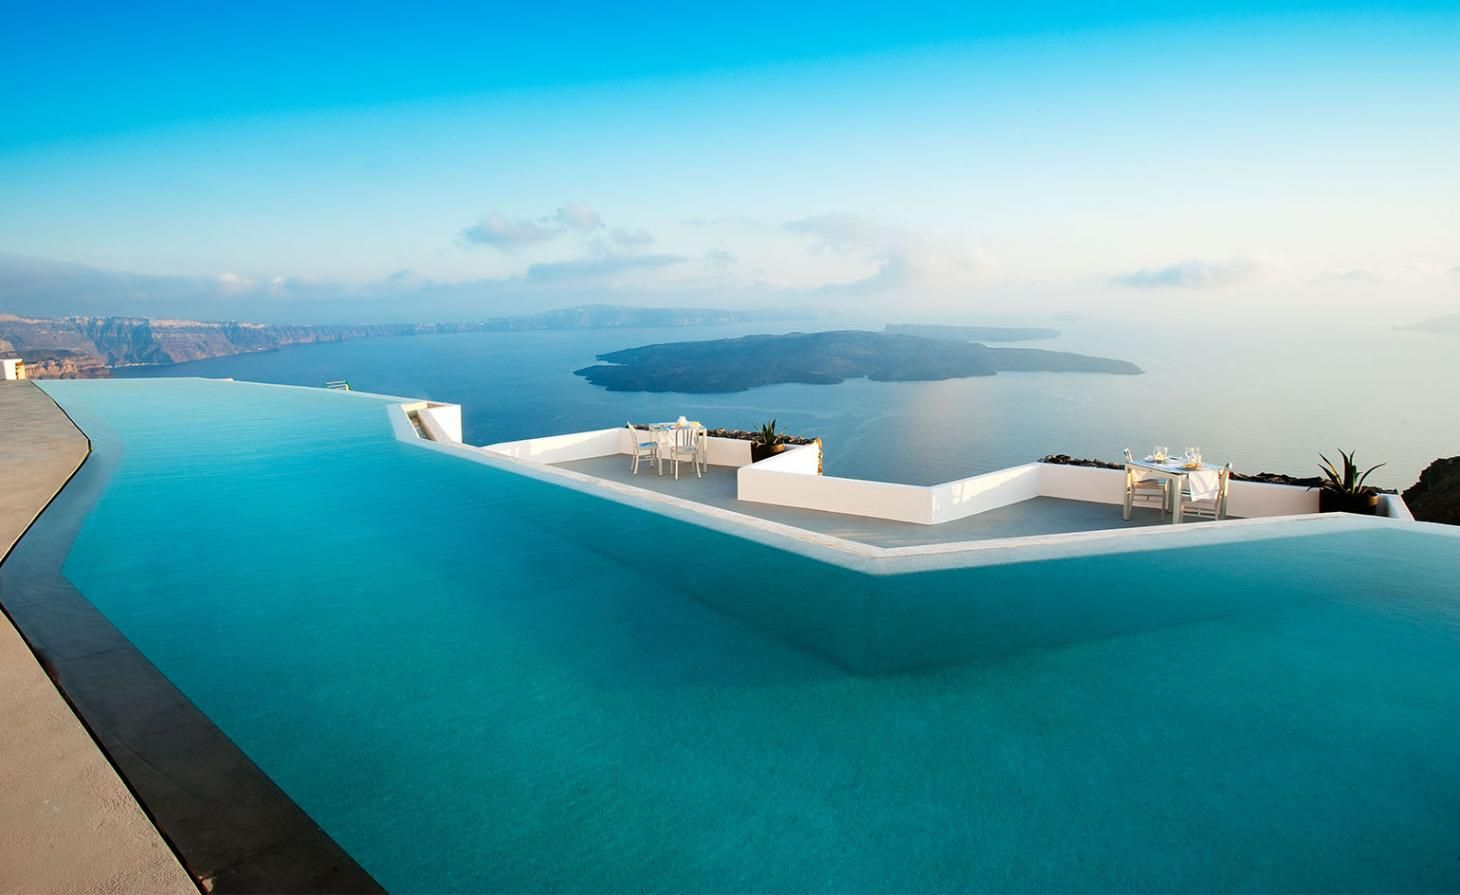 Stay cool with these 10 hotel pools with a view | places